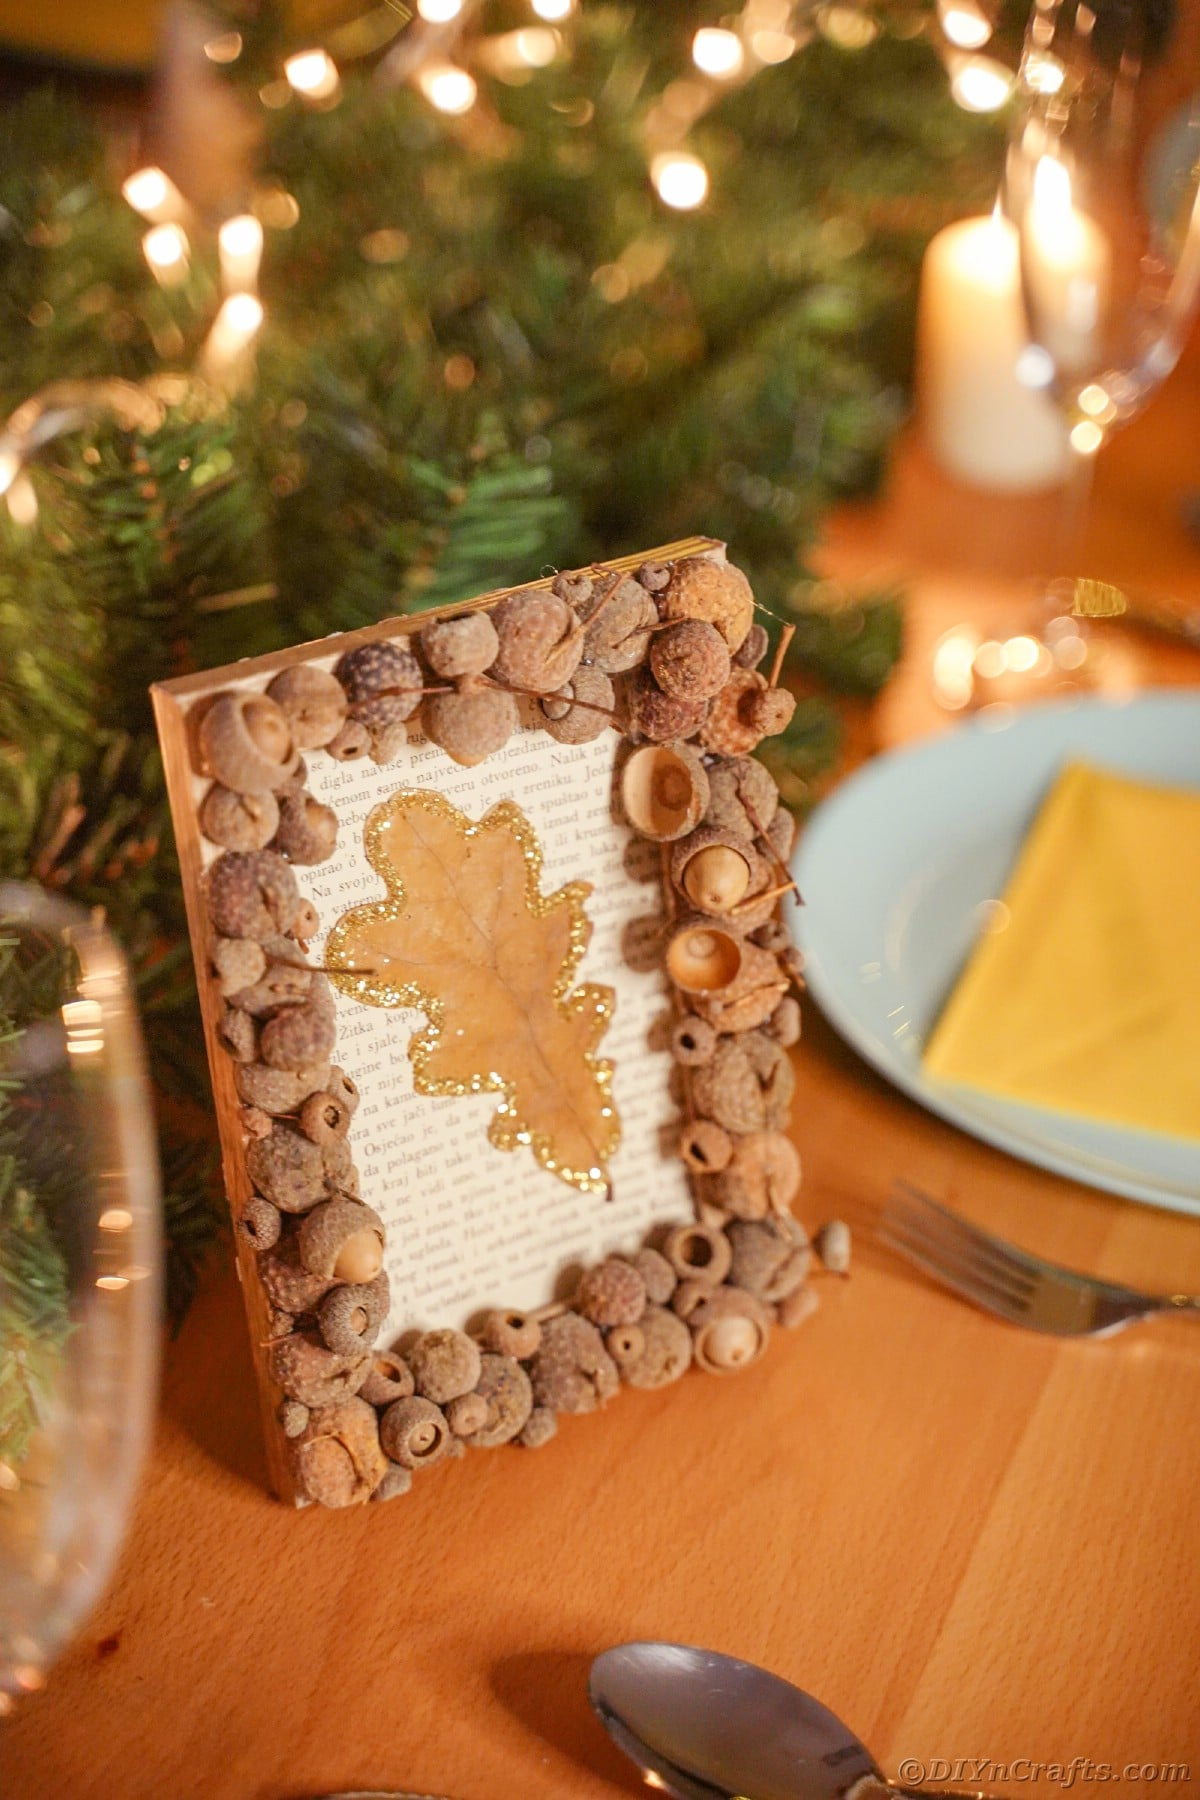 Rustic picture frame on table by place settings